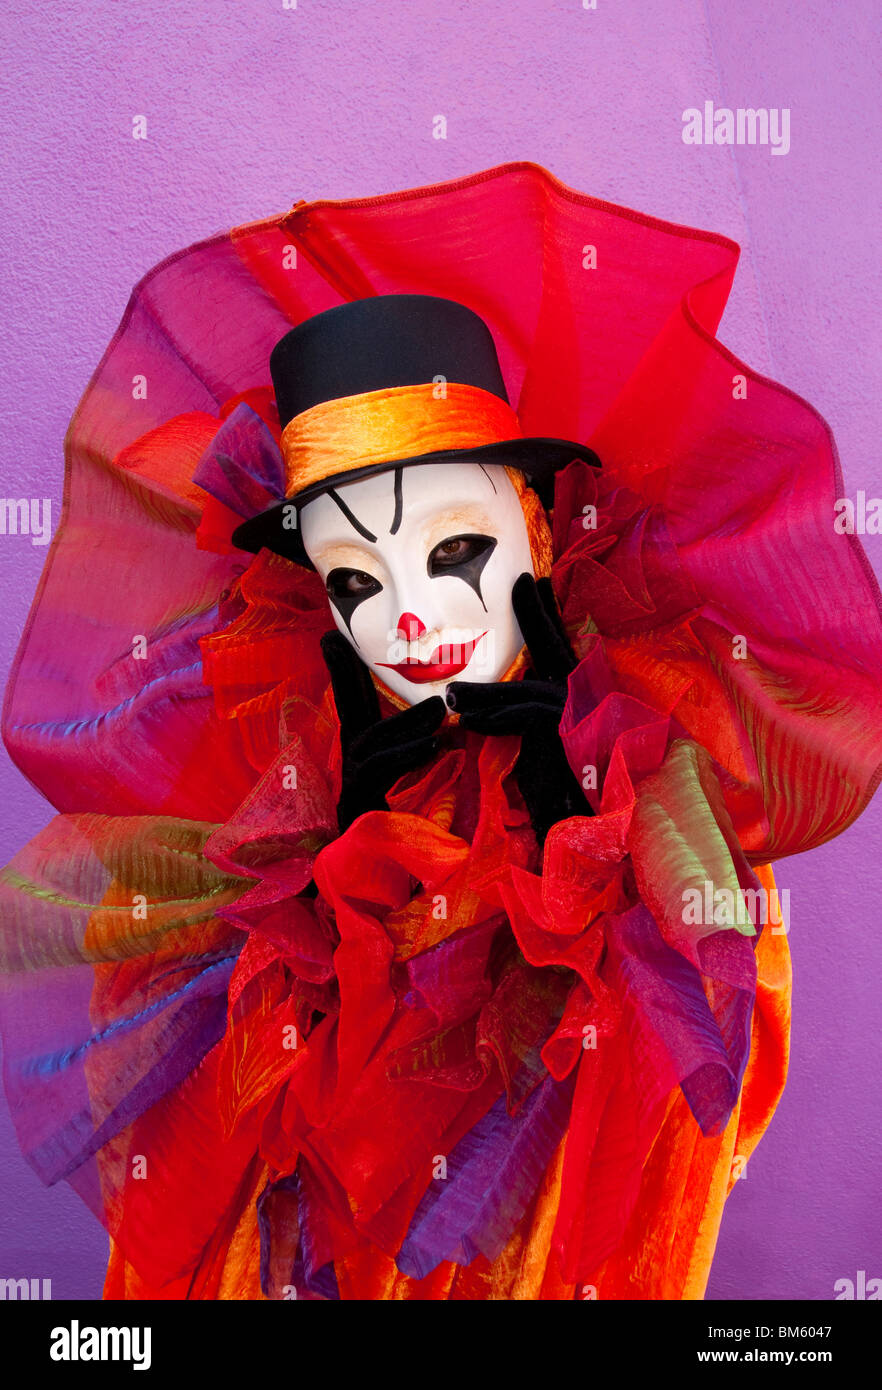 Clown at Venice Carnival, Italy. - Stock Image